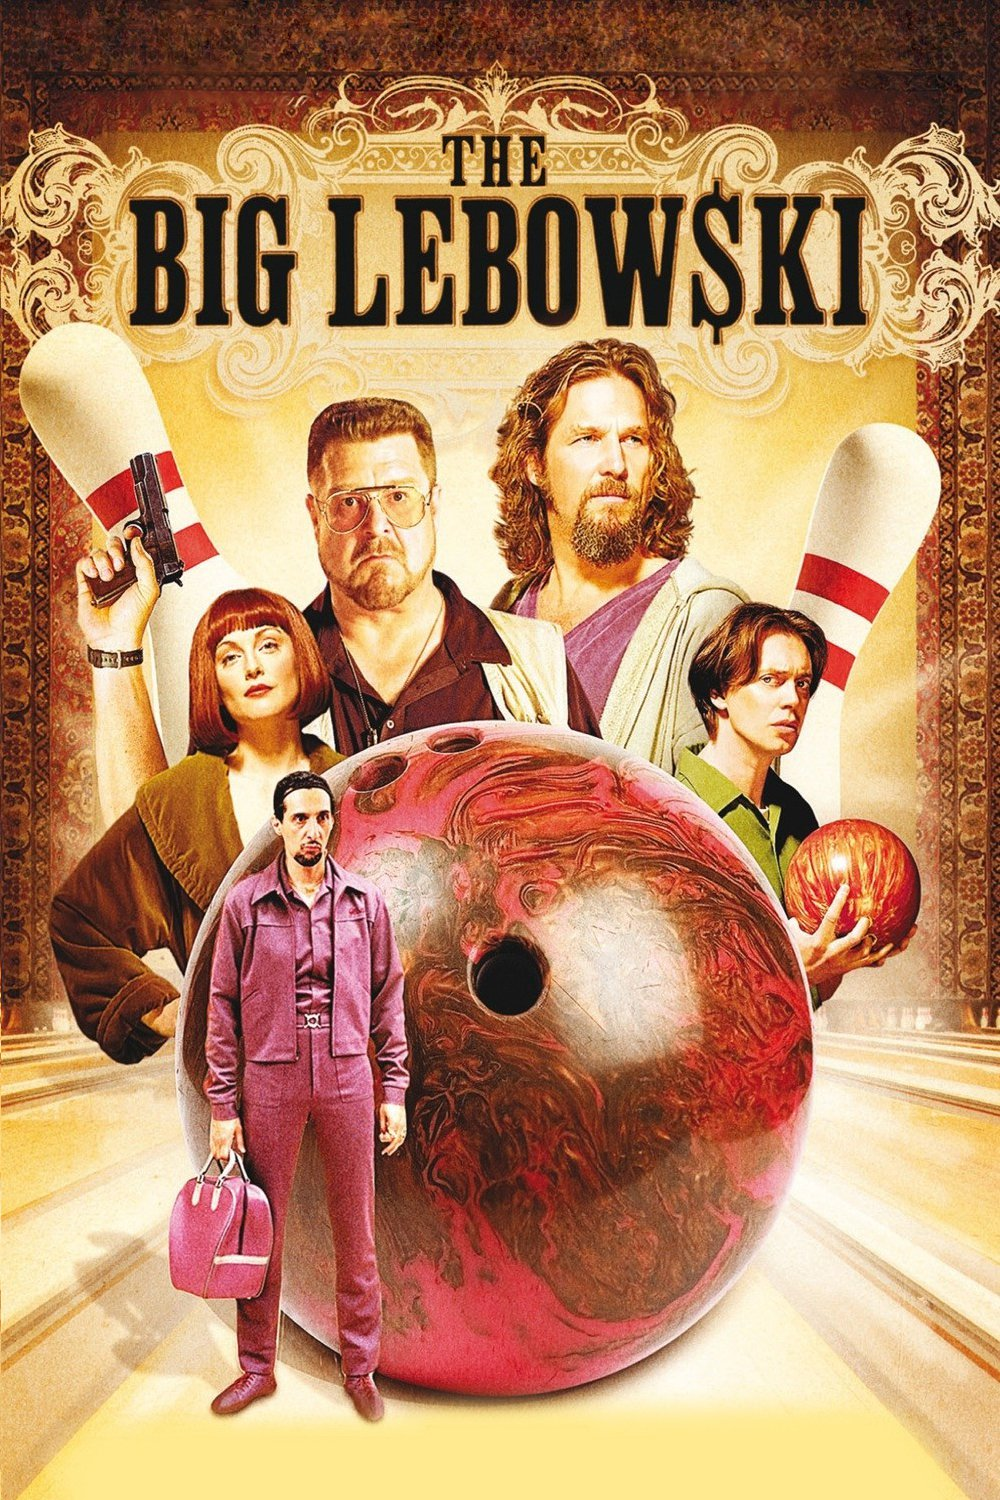 Film Plus: USA met The Big Lebowski en Björn Bolleboom